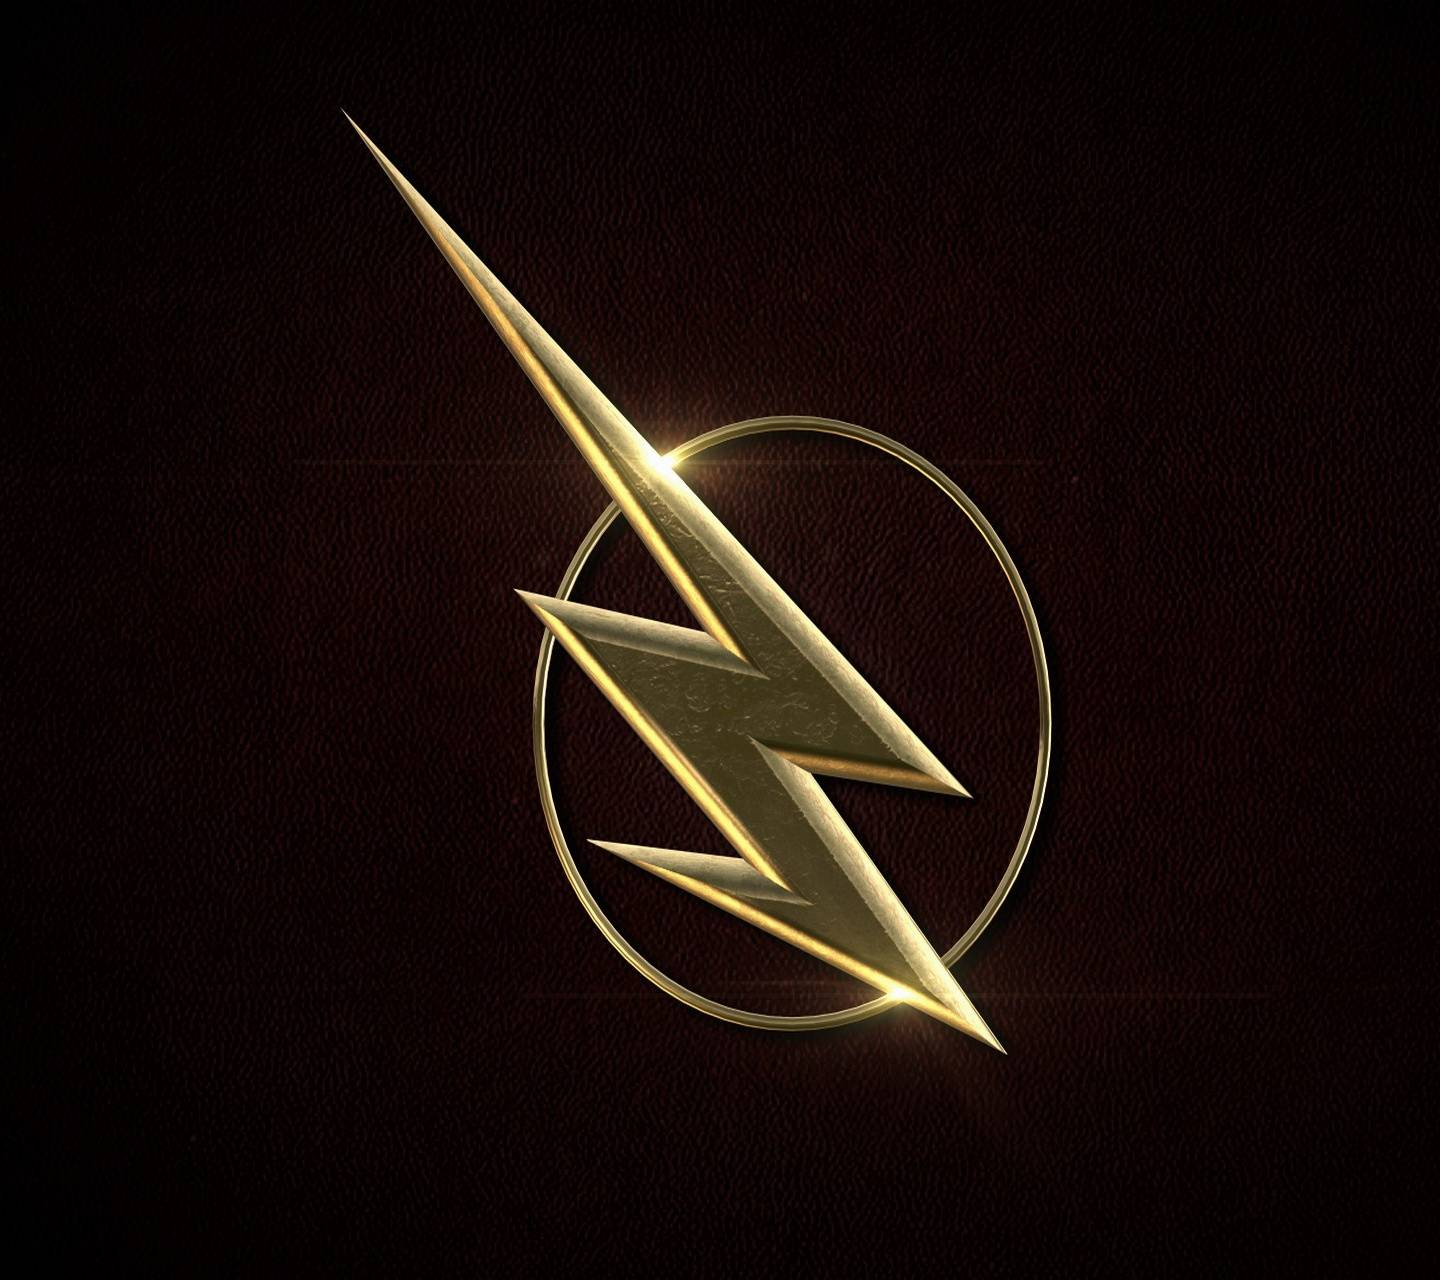 Flash Symbol Wallpaper By Bruherick 89 Free On Zedge